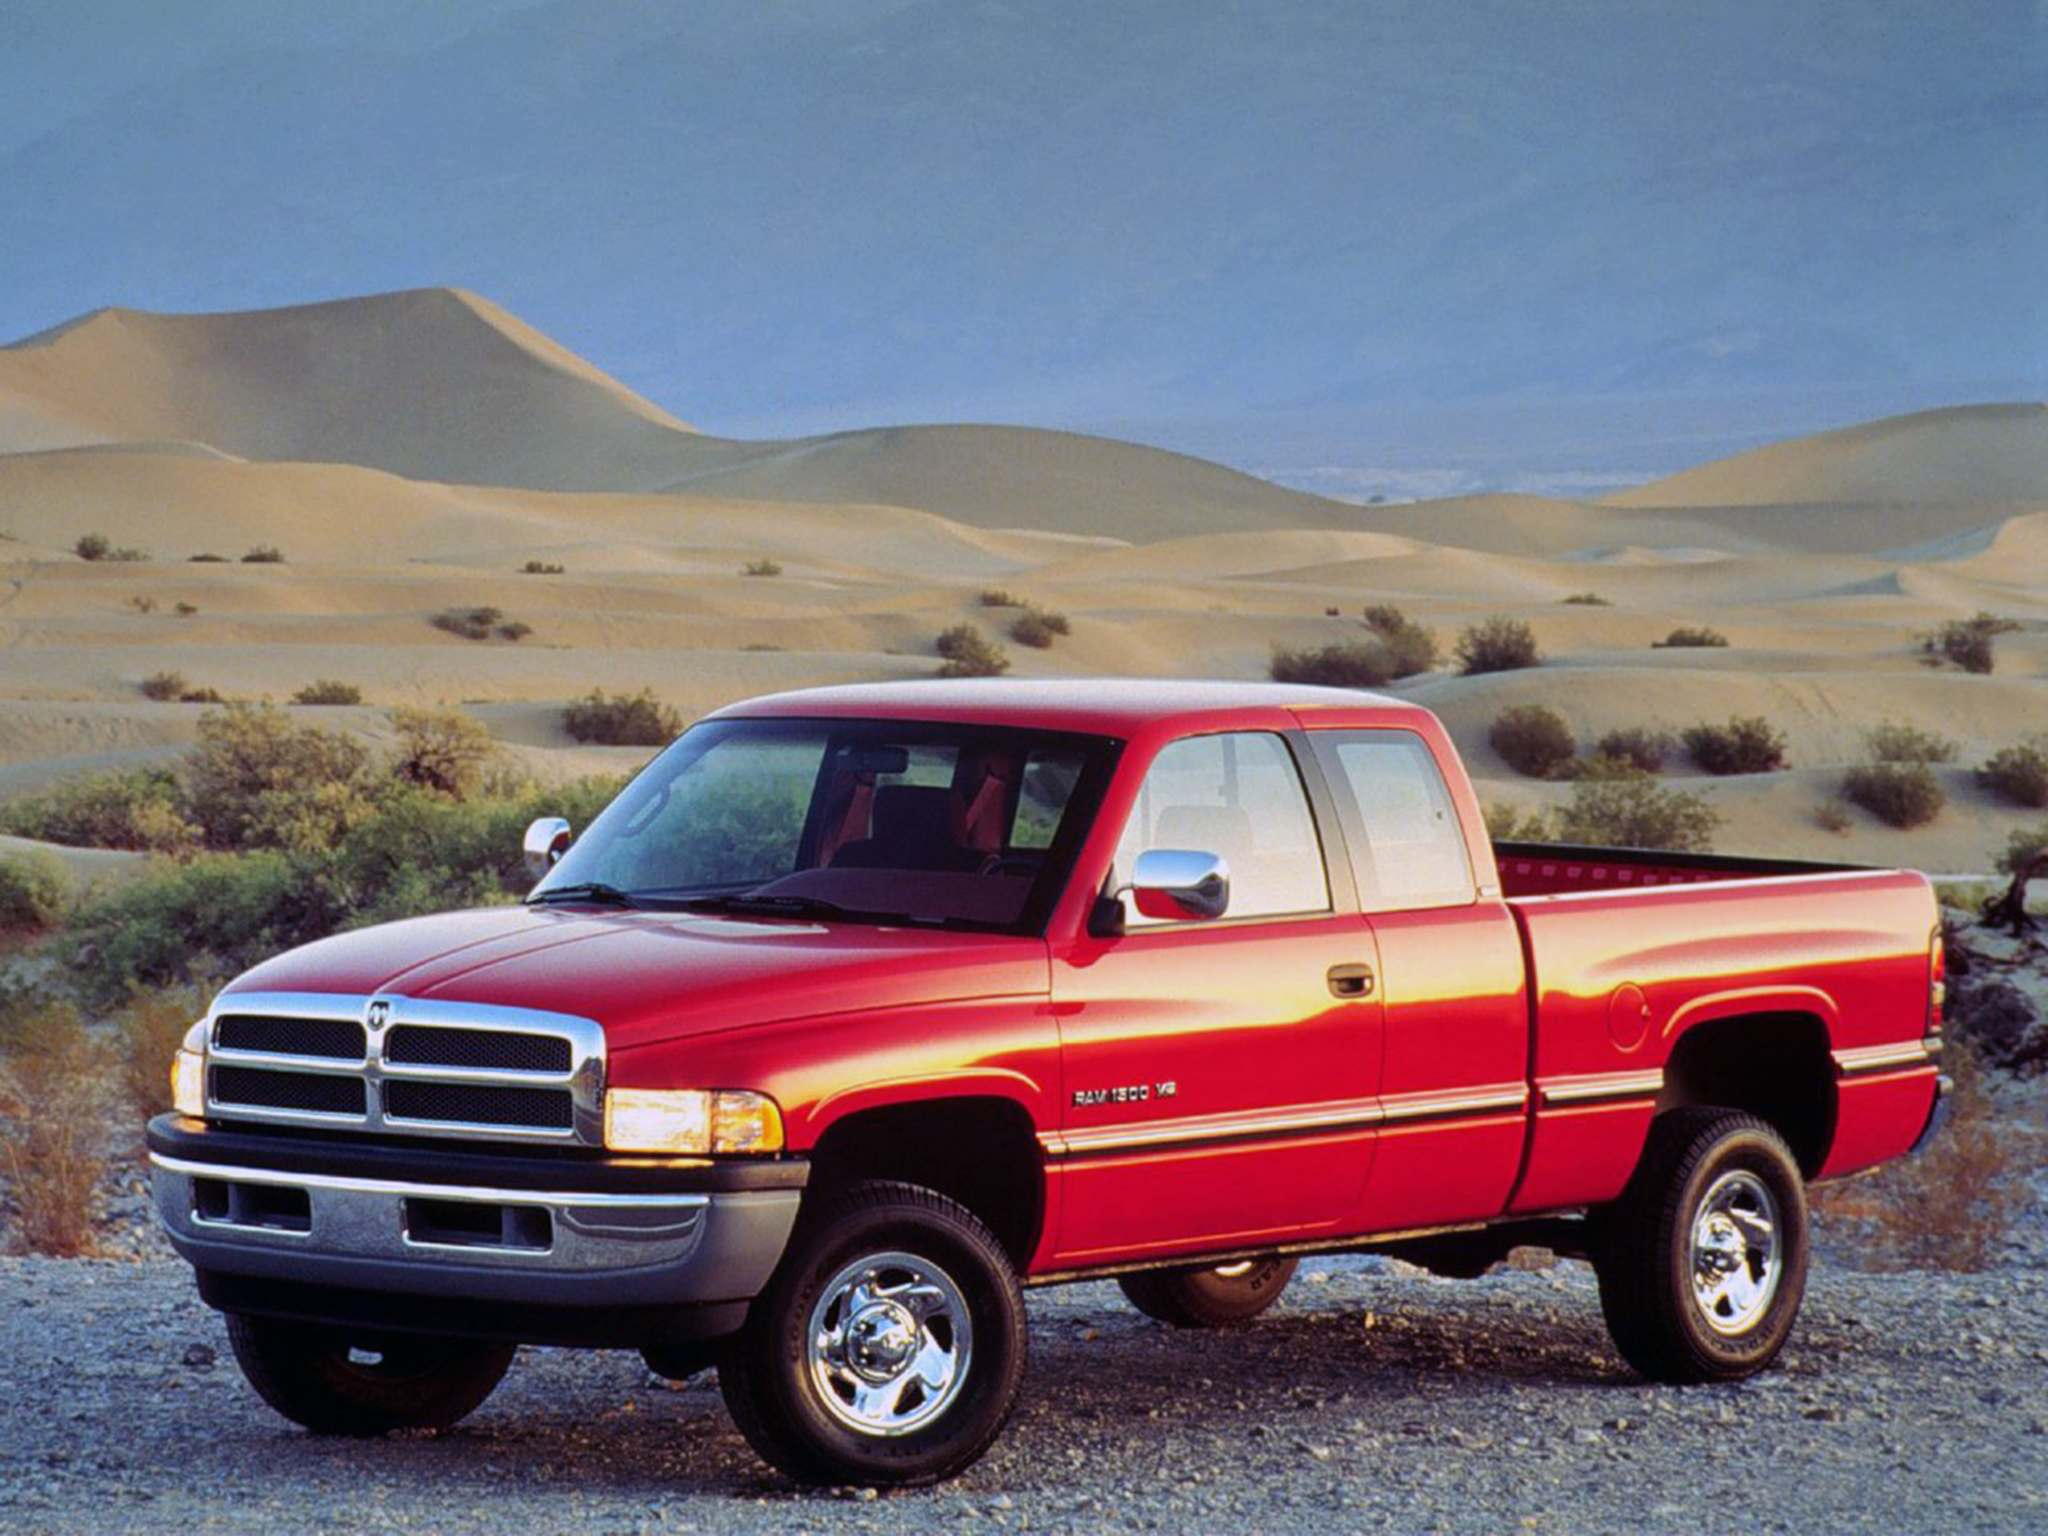 Dodge archivesThe 1994 Dodge Ram Club Cab received a lot of attention when it was released.